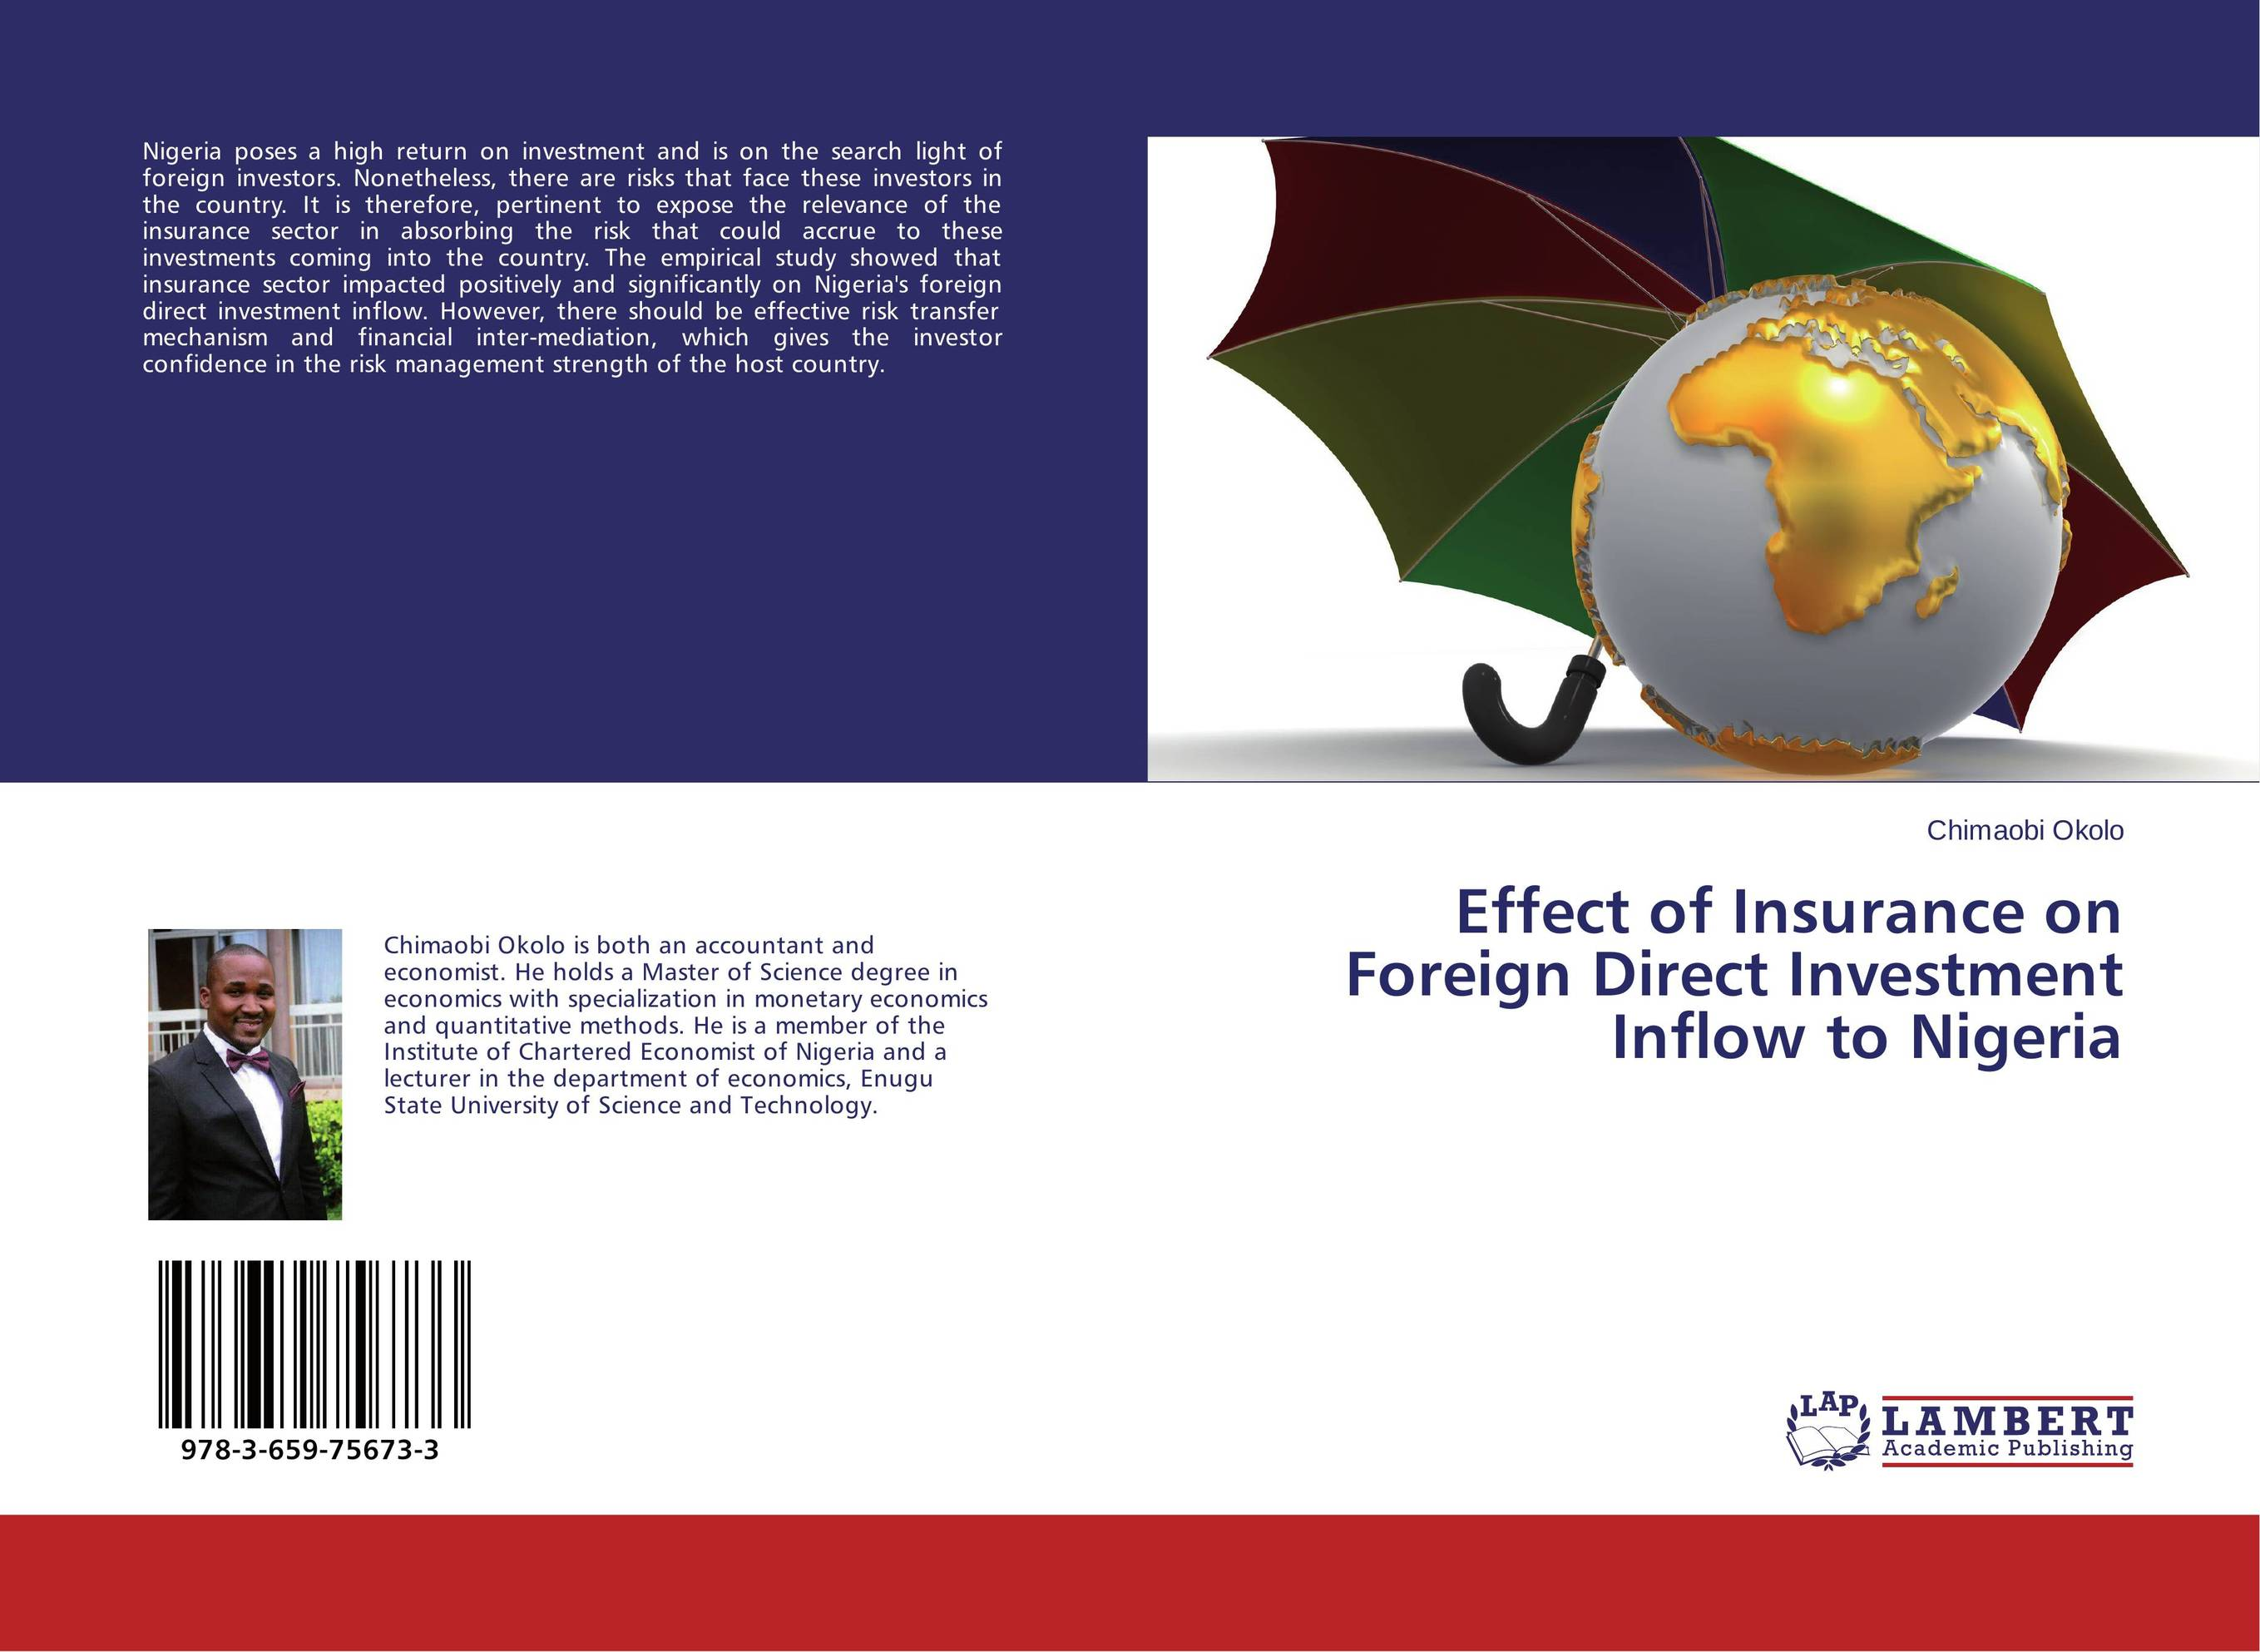 Effect of Insurance on Foreign Direct Investment Inflow to Nigeria